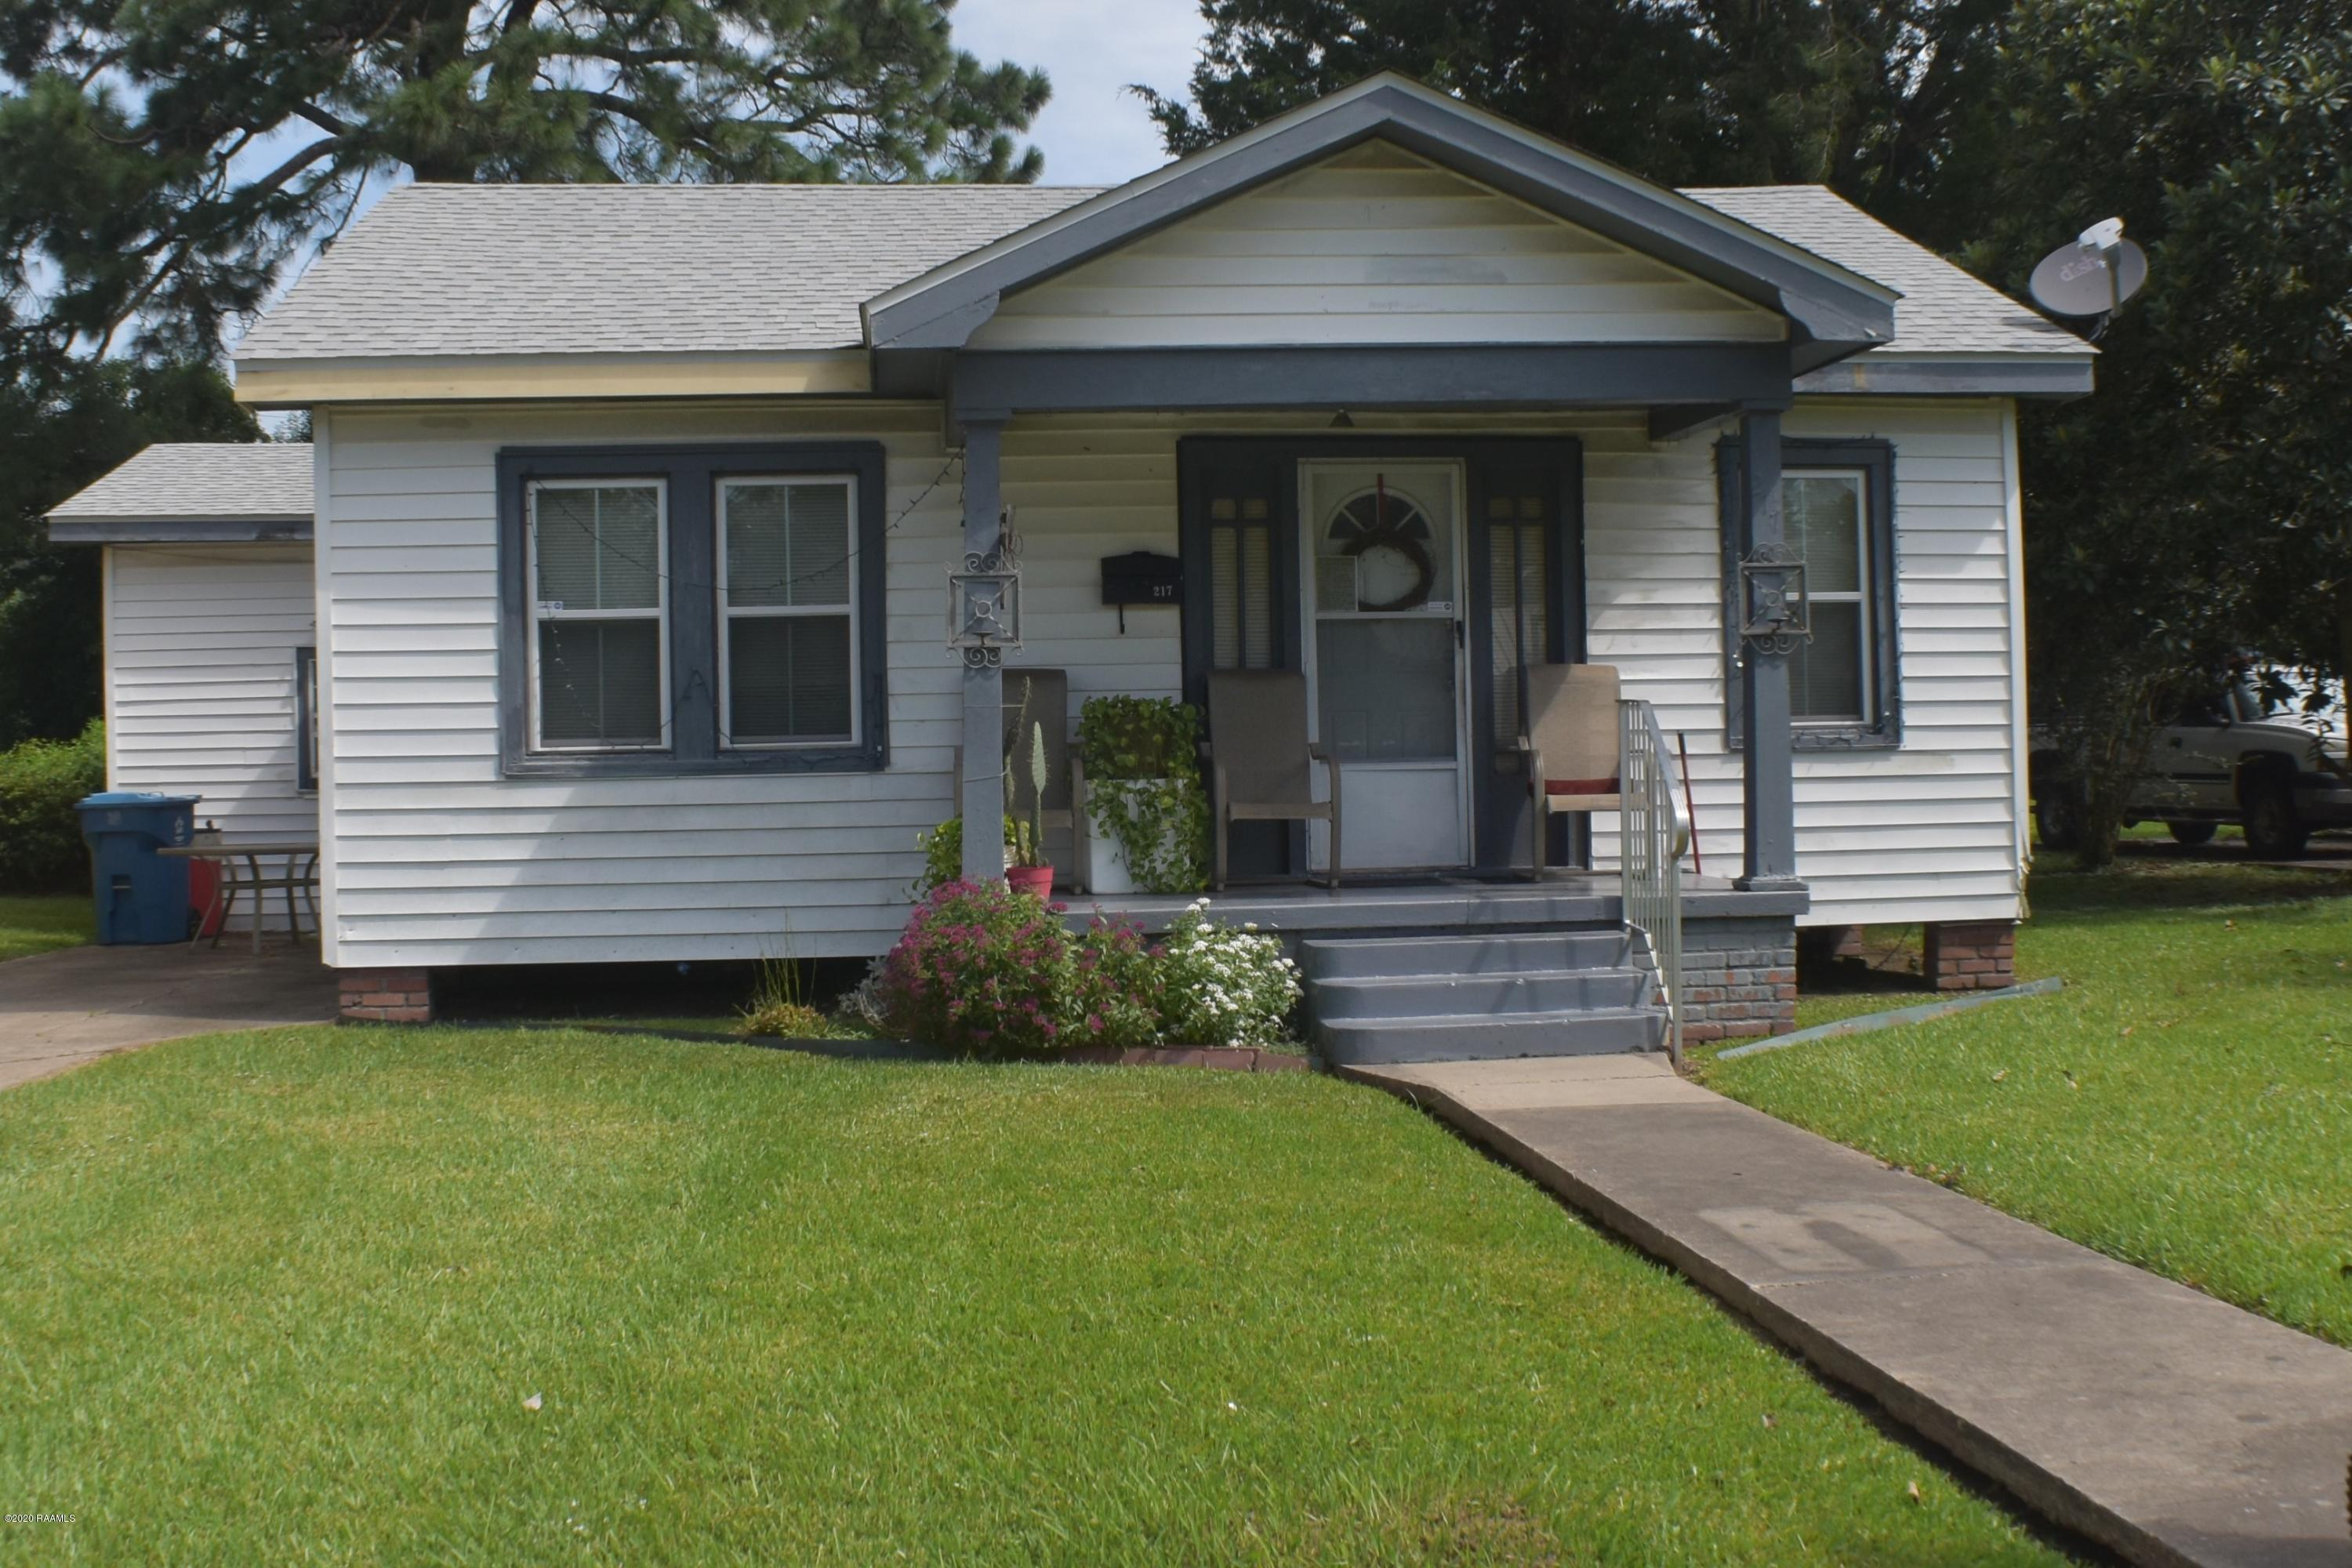 217 Goldman Street, Lafayette, LA 70501 Photo #1